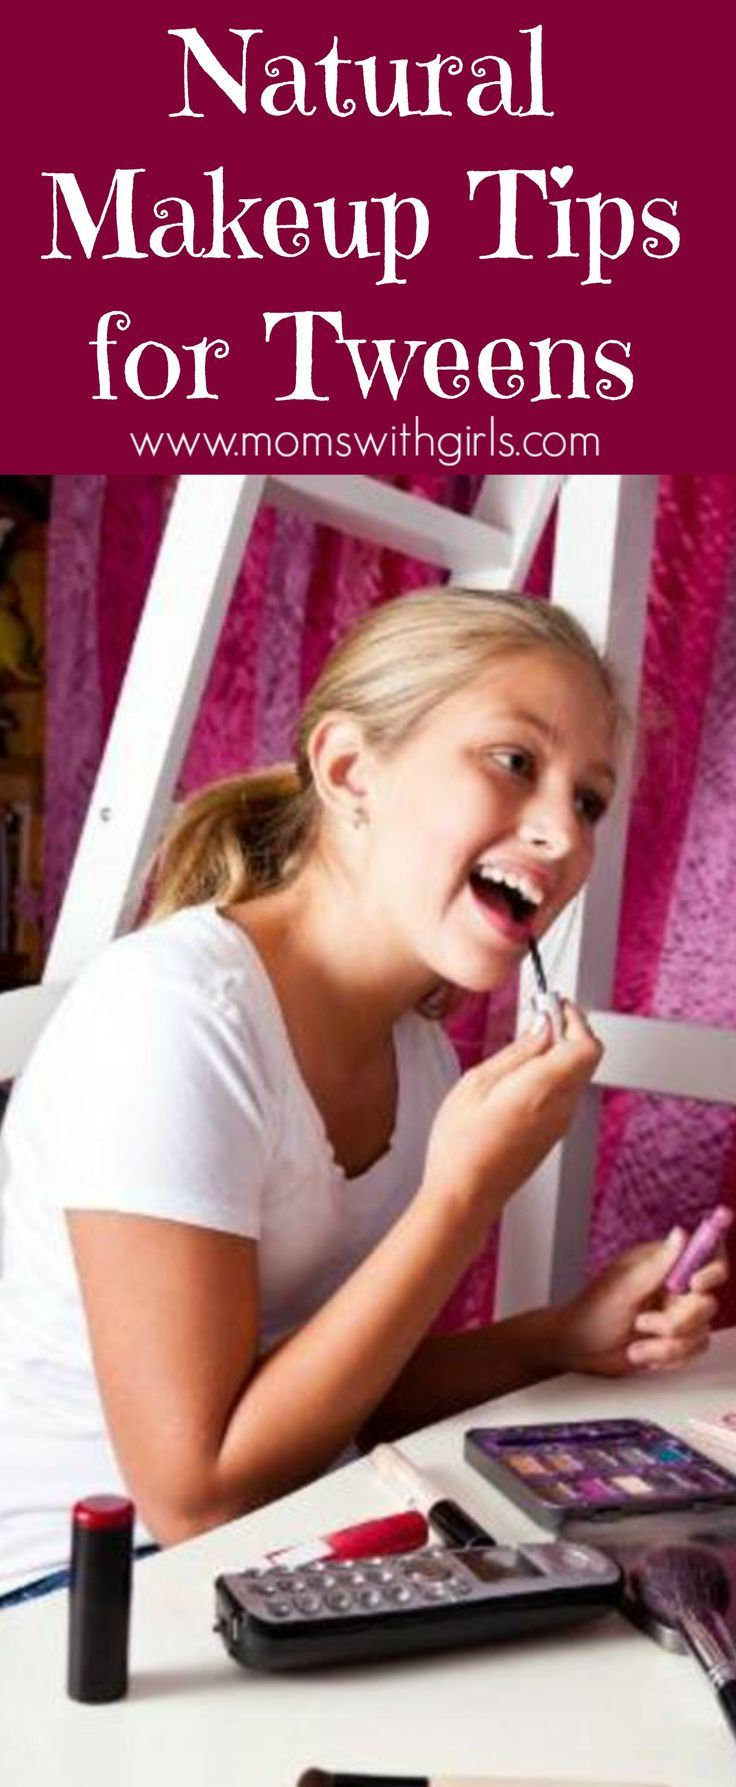 Here are some very natural makeup tips for tweens to pass